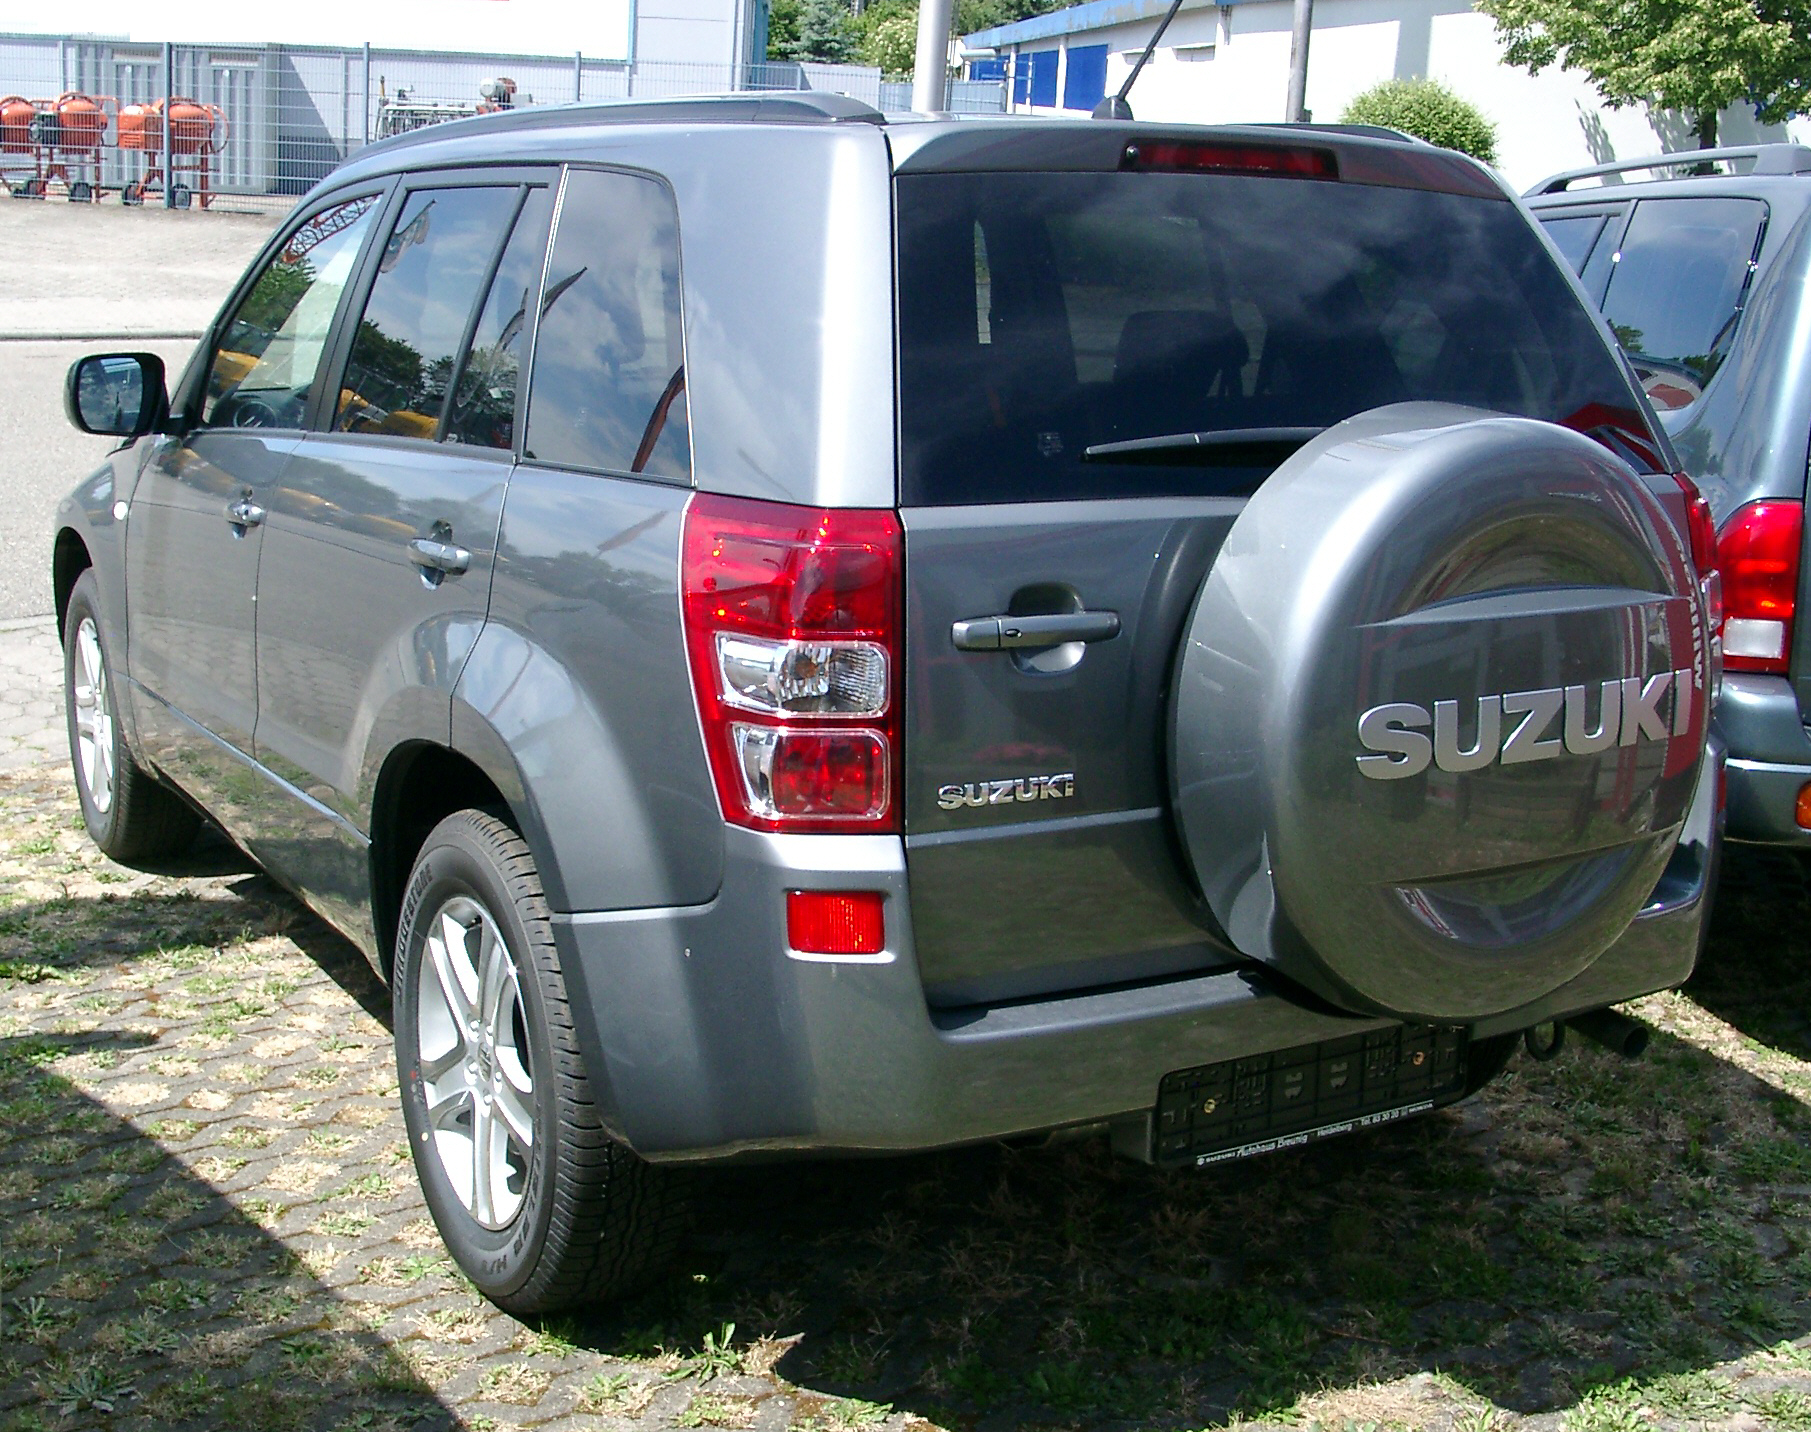 file suzuki grand vitara rear wikimedia mons